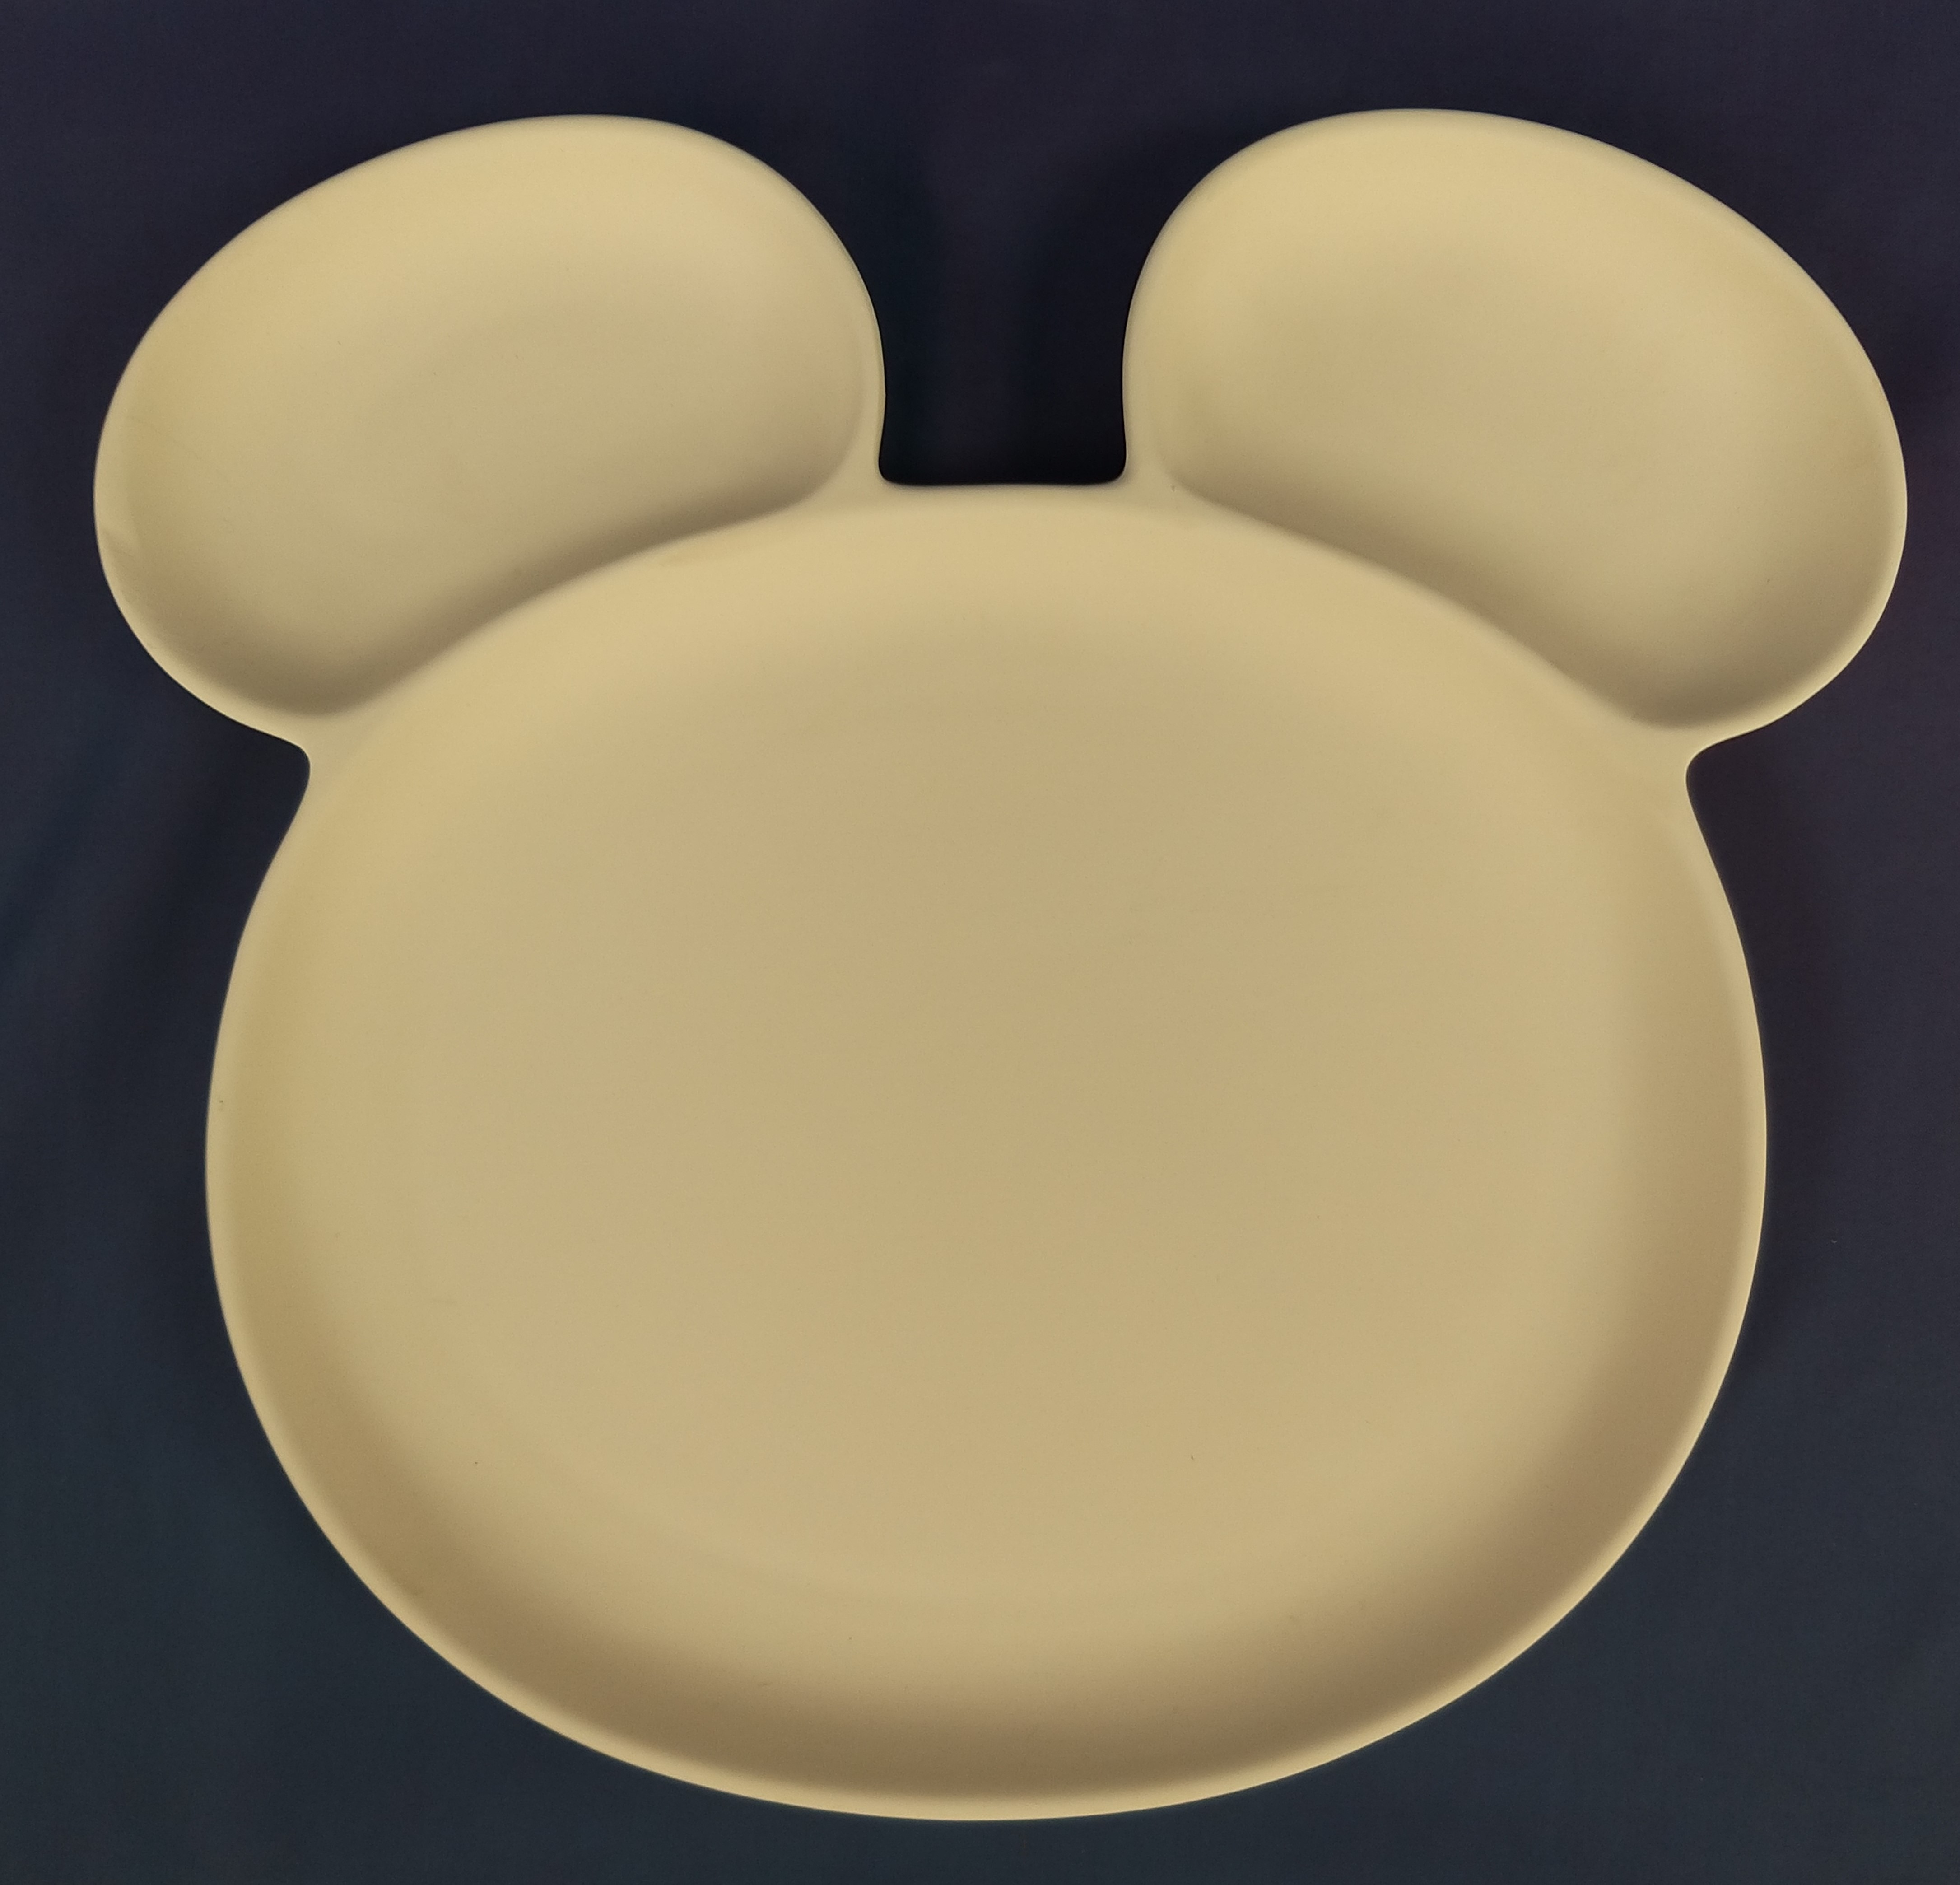 Plate with Ears